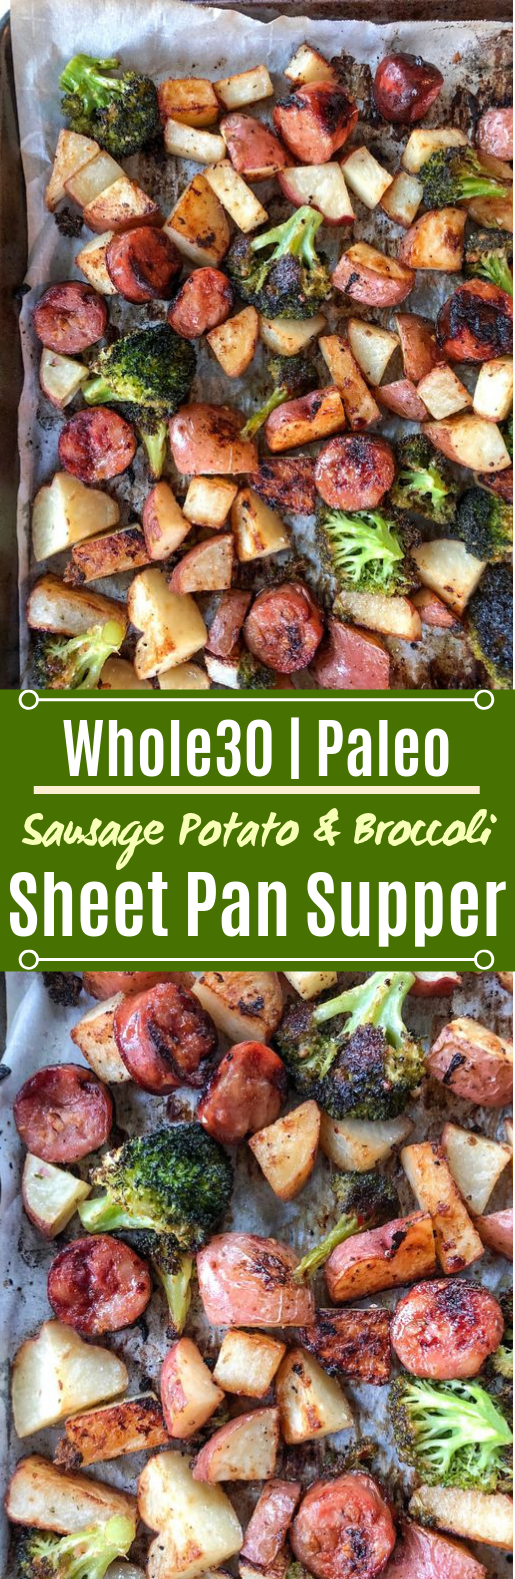 Sausage, Potato & Broccoli Sheet Pan Supper #healthy #glutenfree